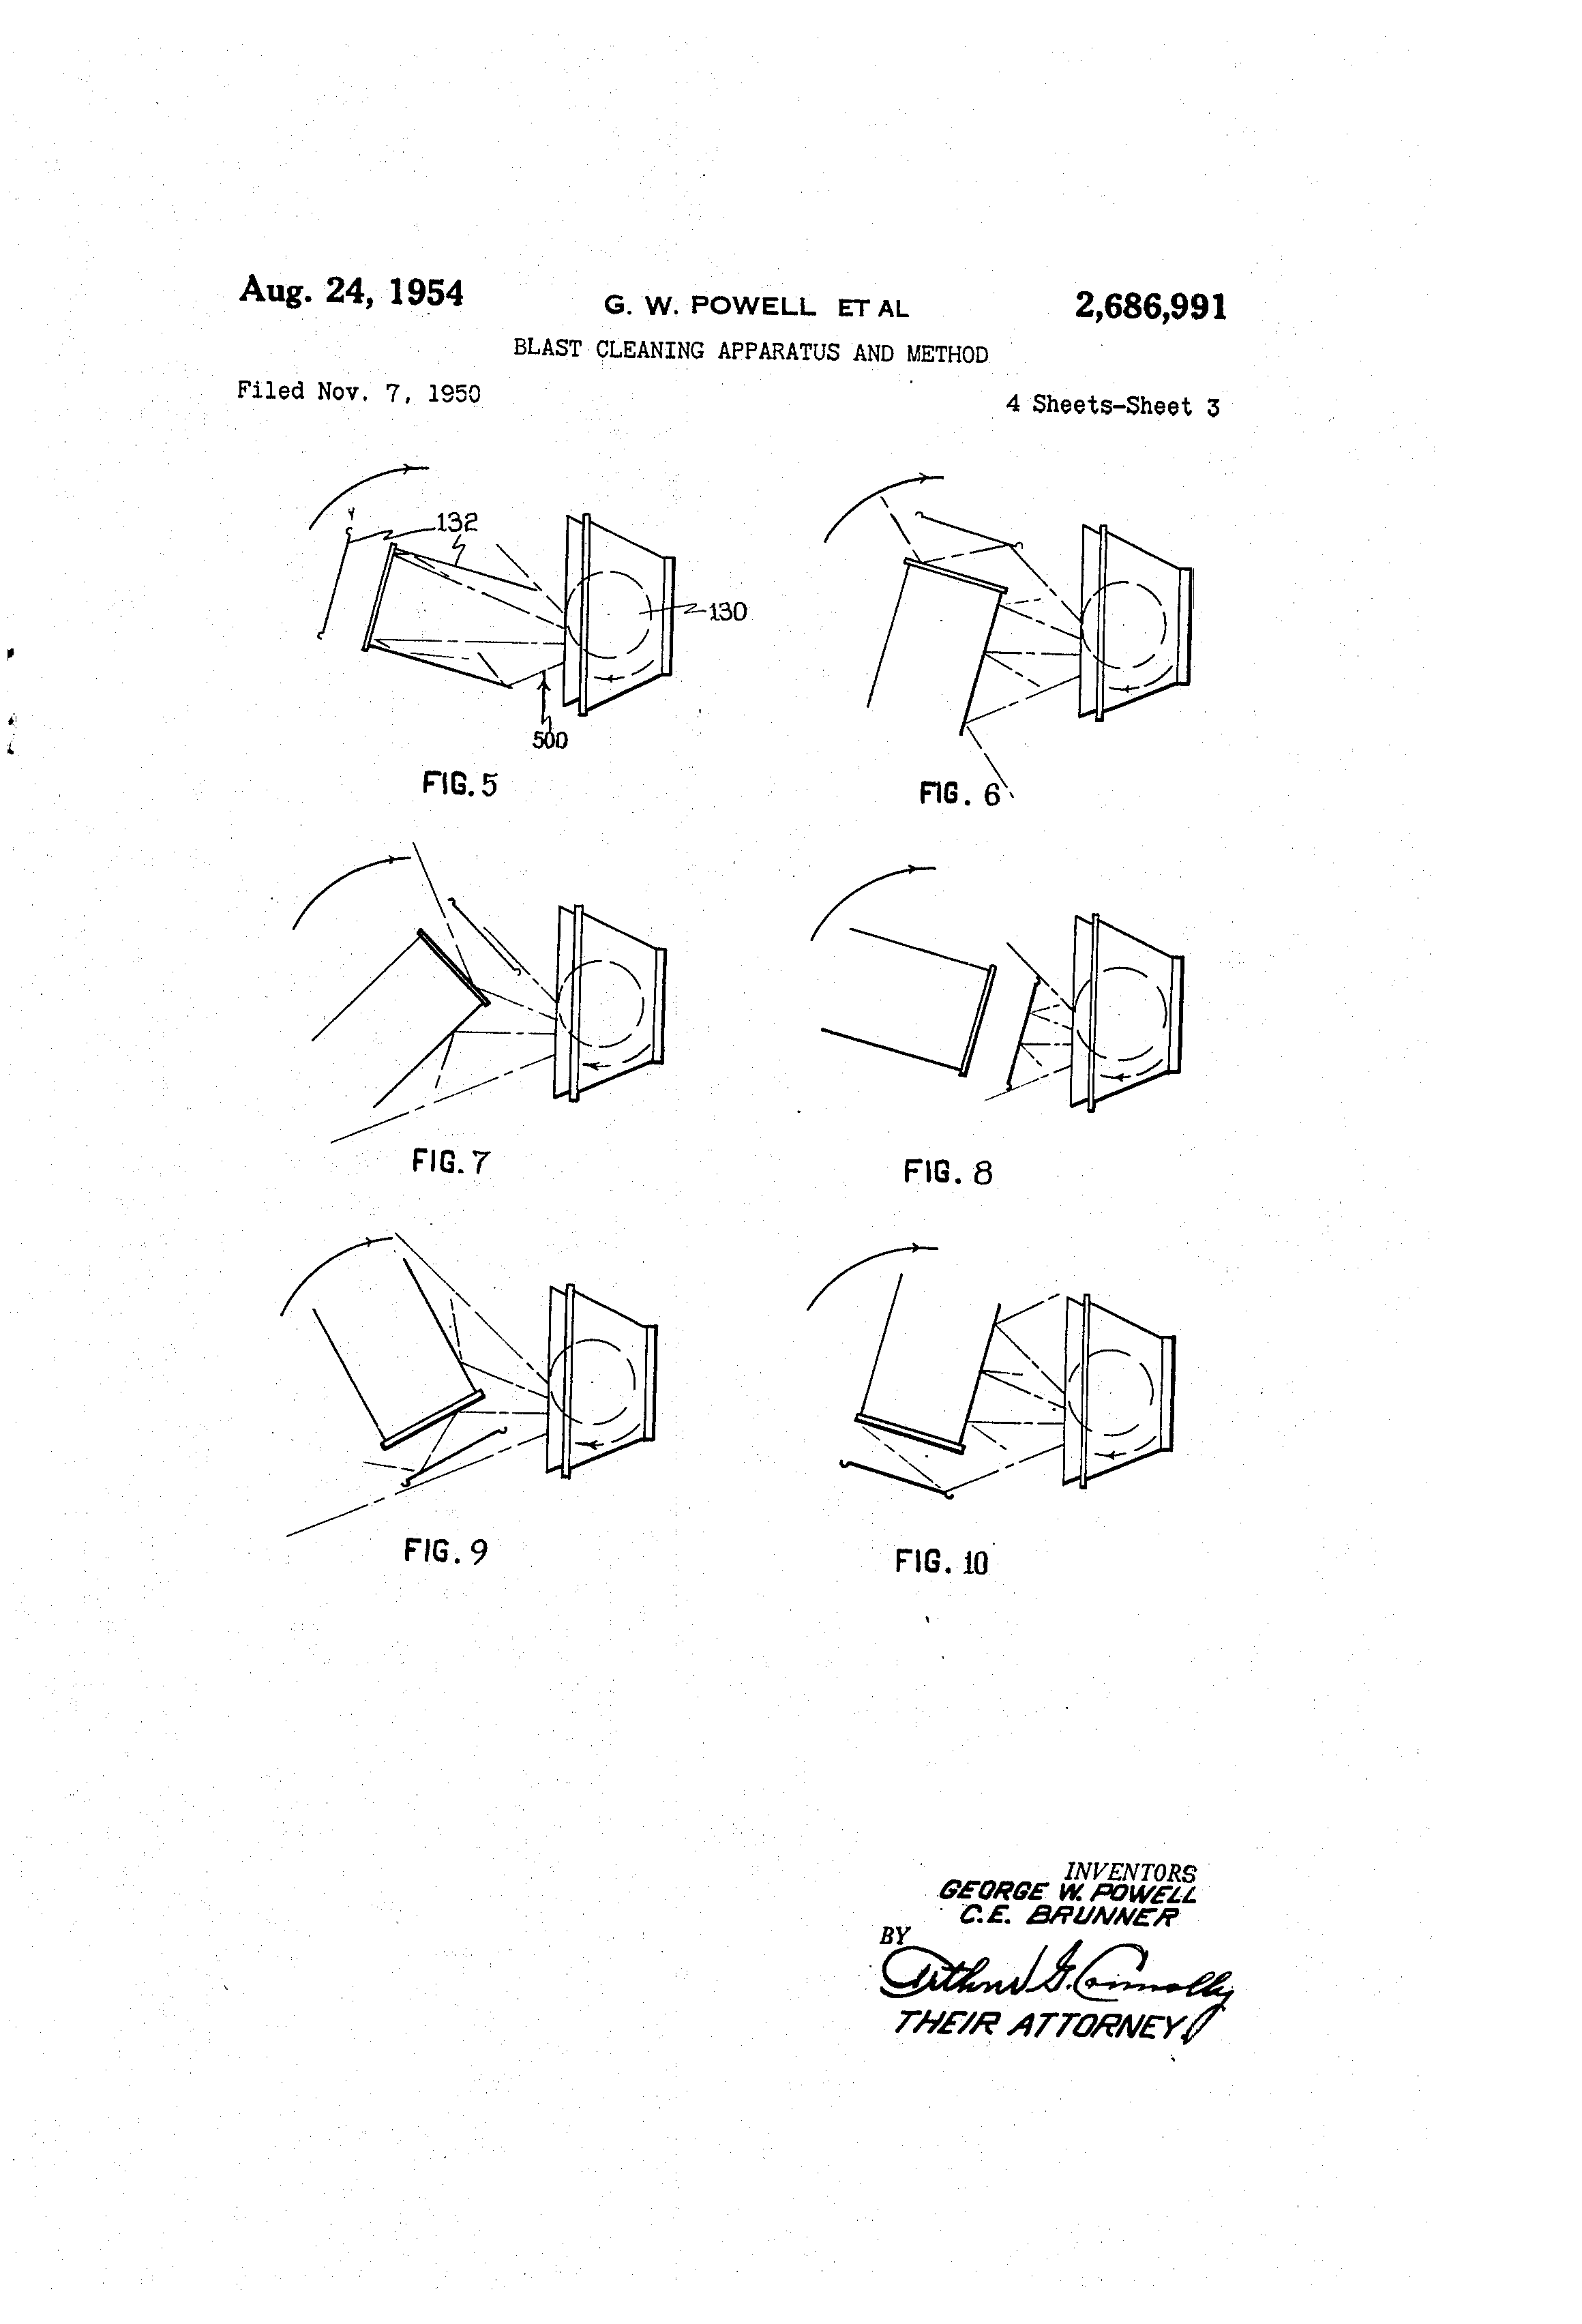 blast cleaning apparatus and method